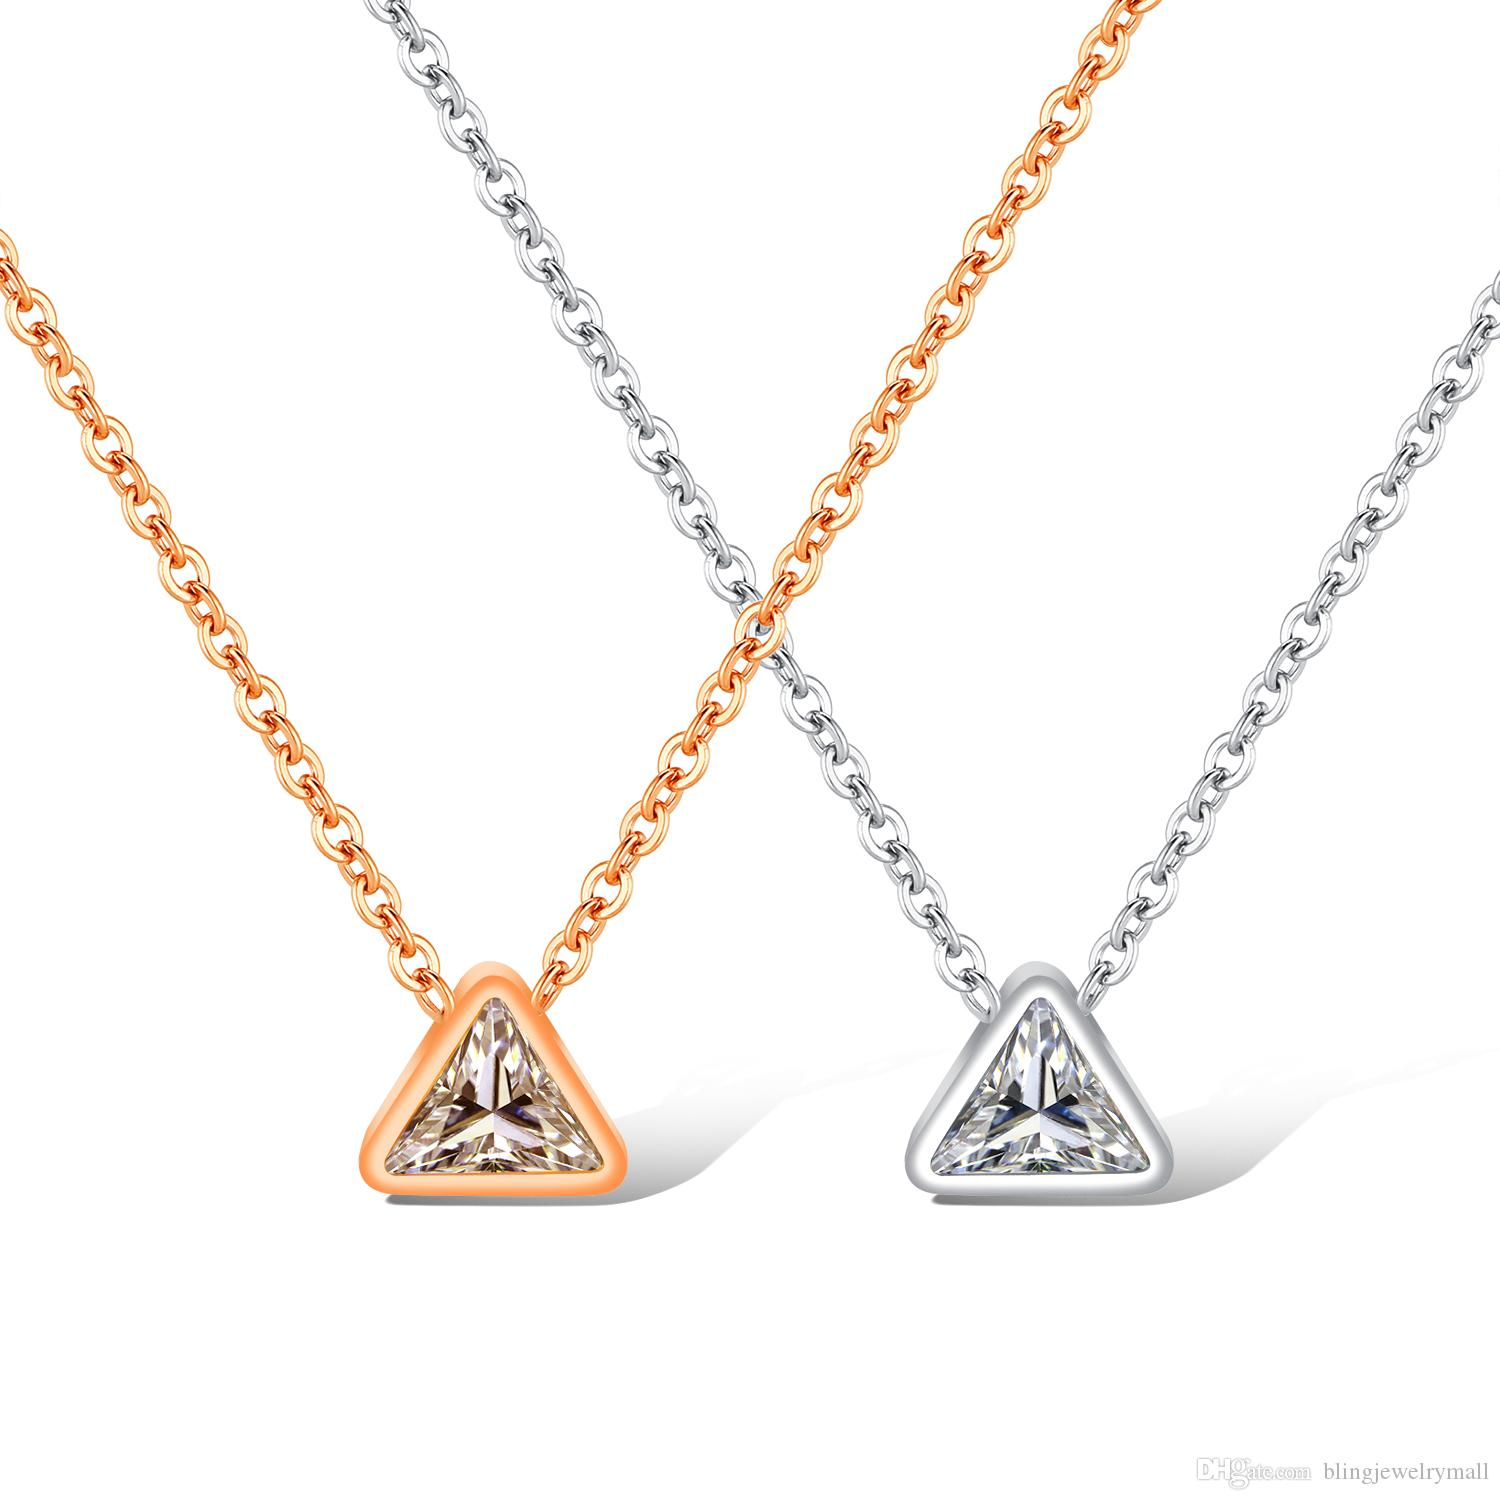 74a696f29862f Trendy Simple Link Chains Silver Rose Gold Triangle Pendant Necklaces  Delicate Minimal Women Charm Necklace Jewelry GX1399